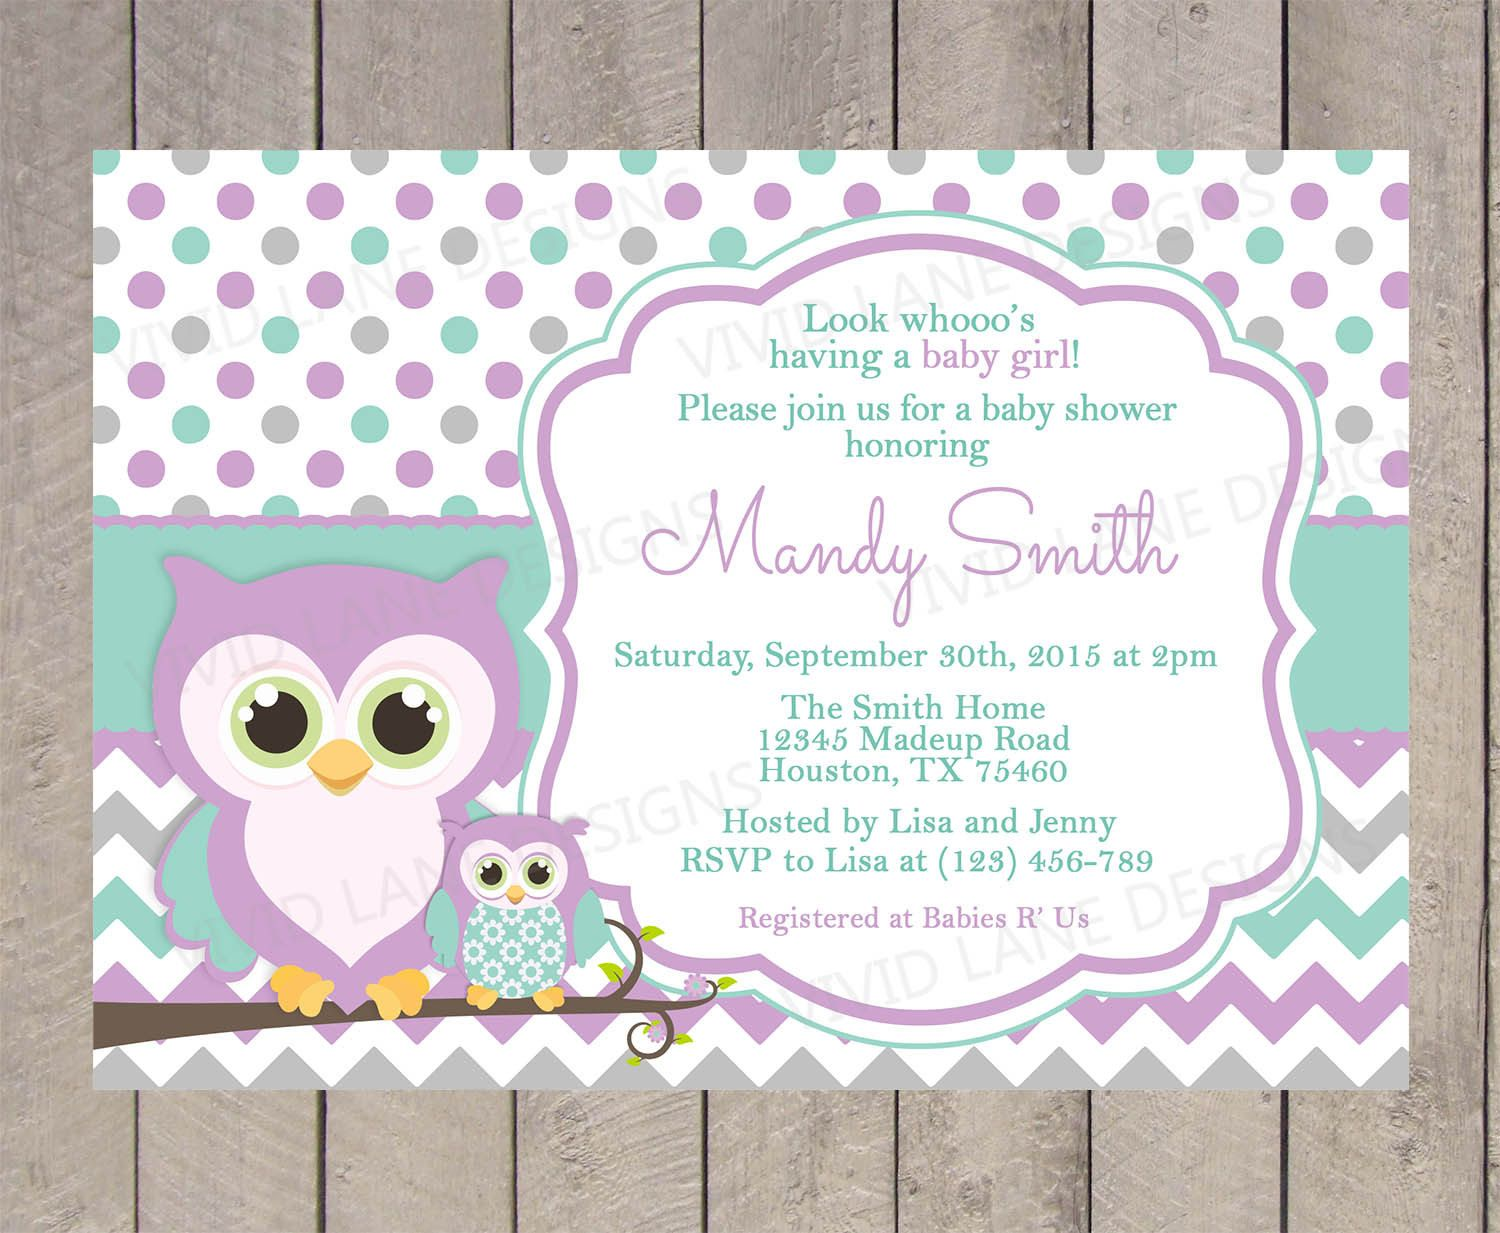 Lovely Owls Baby Shower Invitation   Purple, Teal And Grey, Chevron, Polka Dots,  Mom And Baby Owl, Girl Baby Shower Invite   224